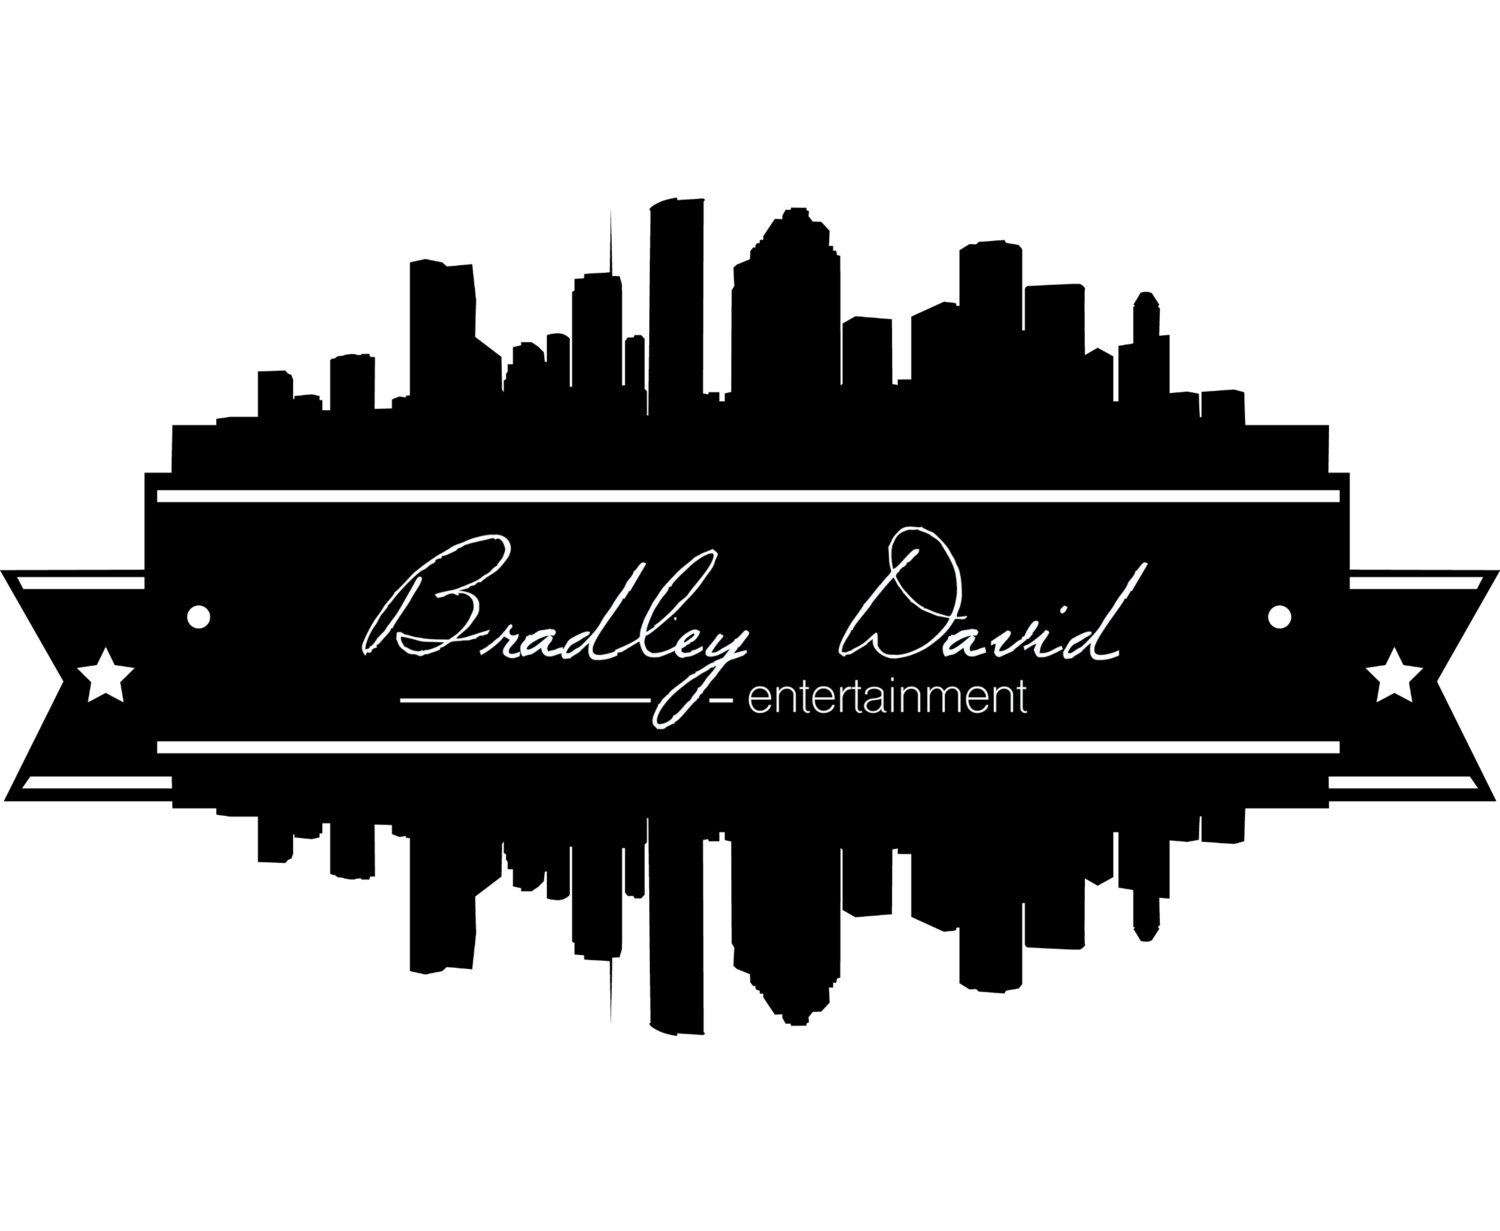 Bradley David Entertainment